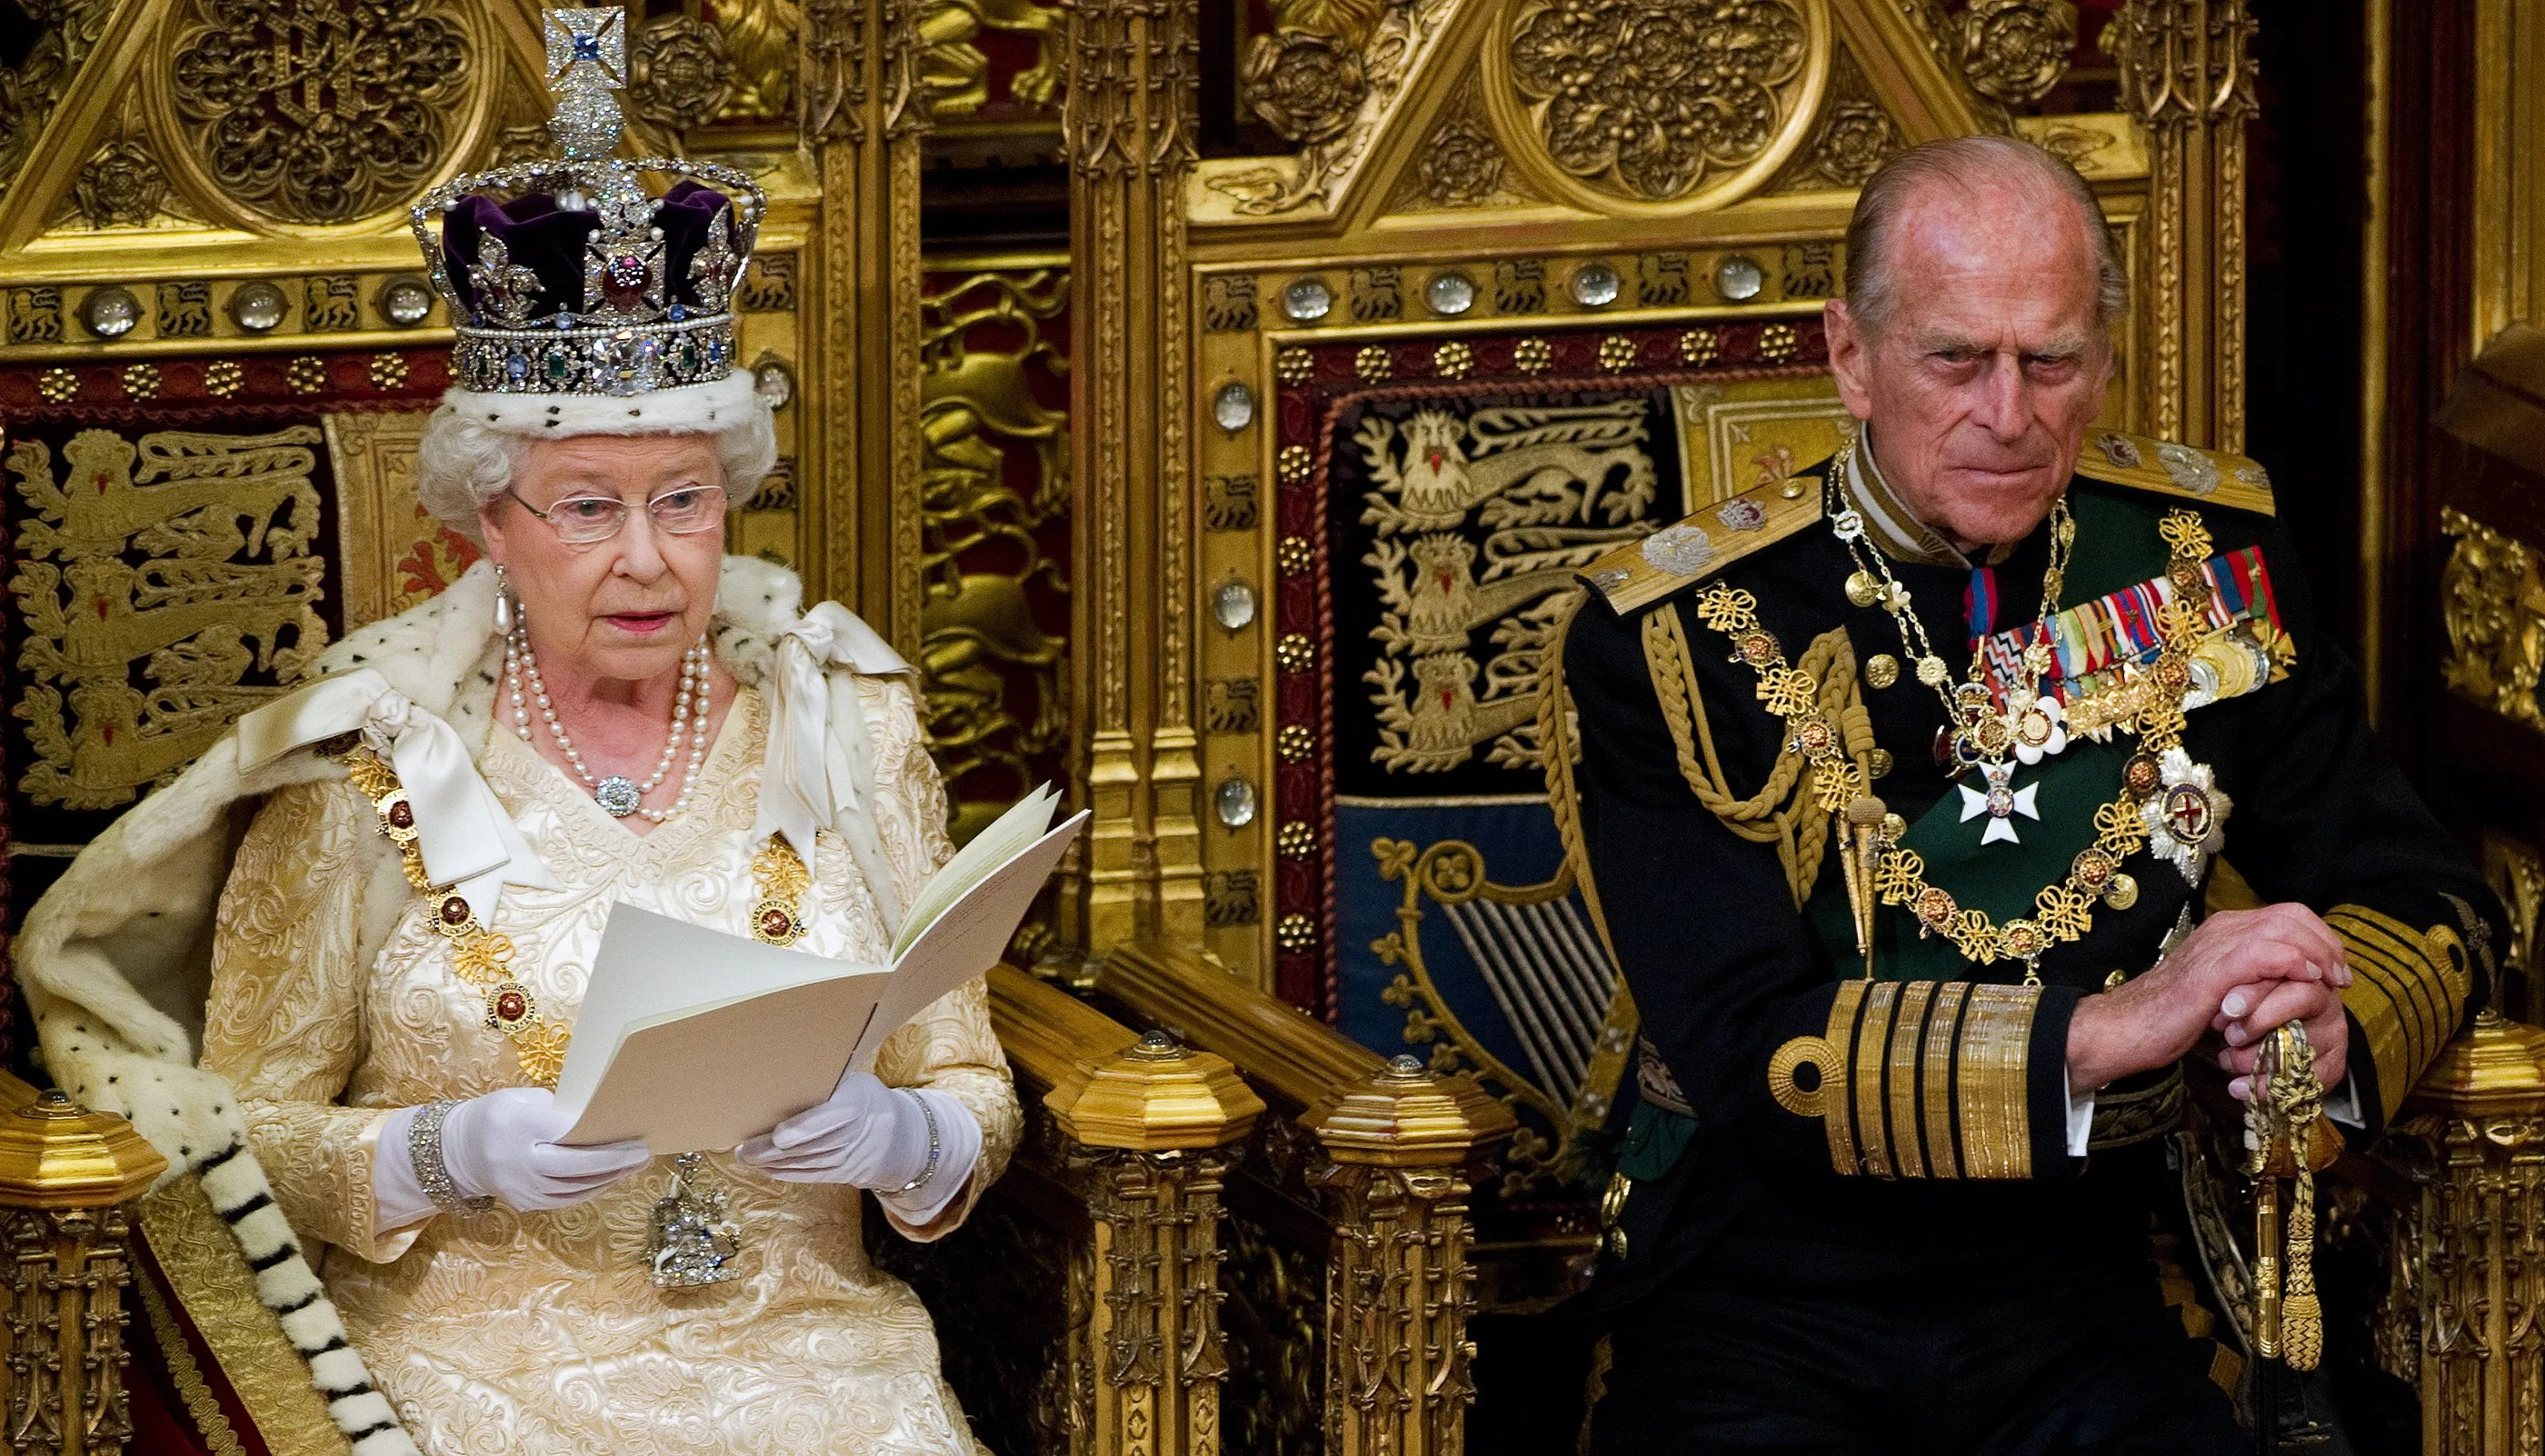 British Prince Philip is seen with Queen Elizabeth at the opening of Parliament in 2010.